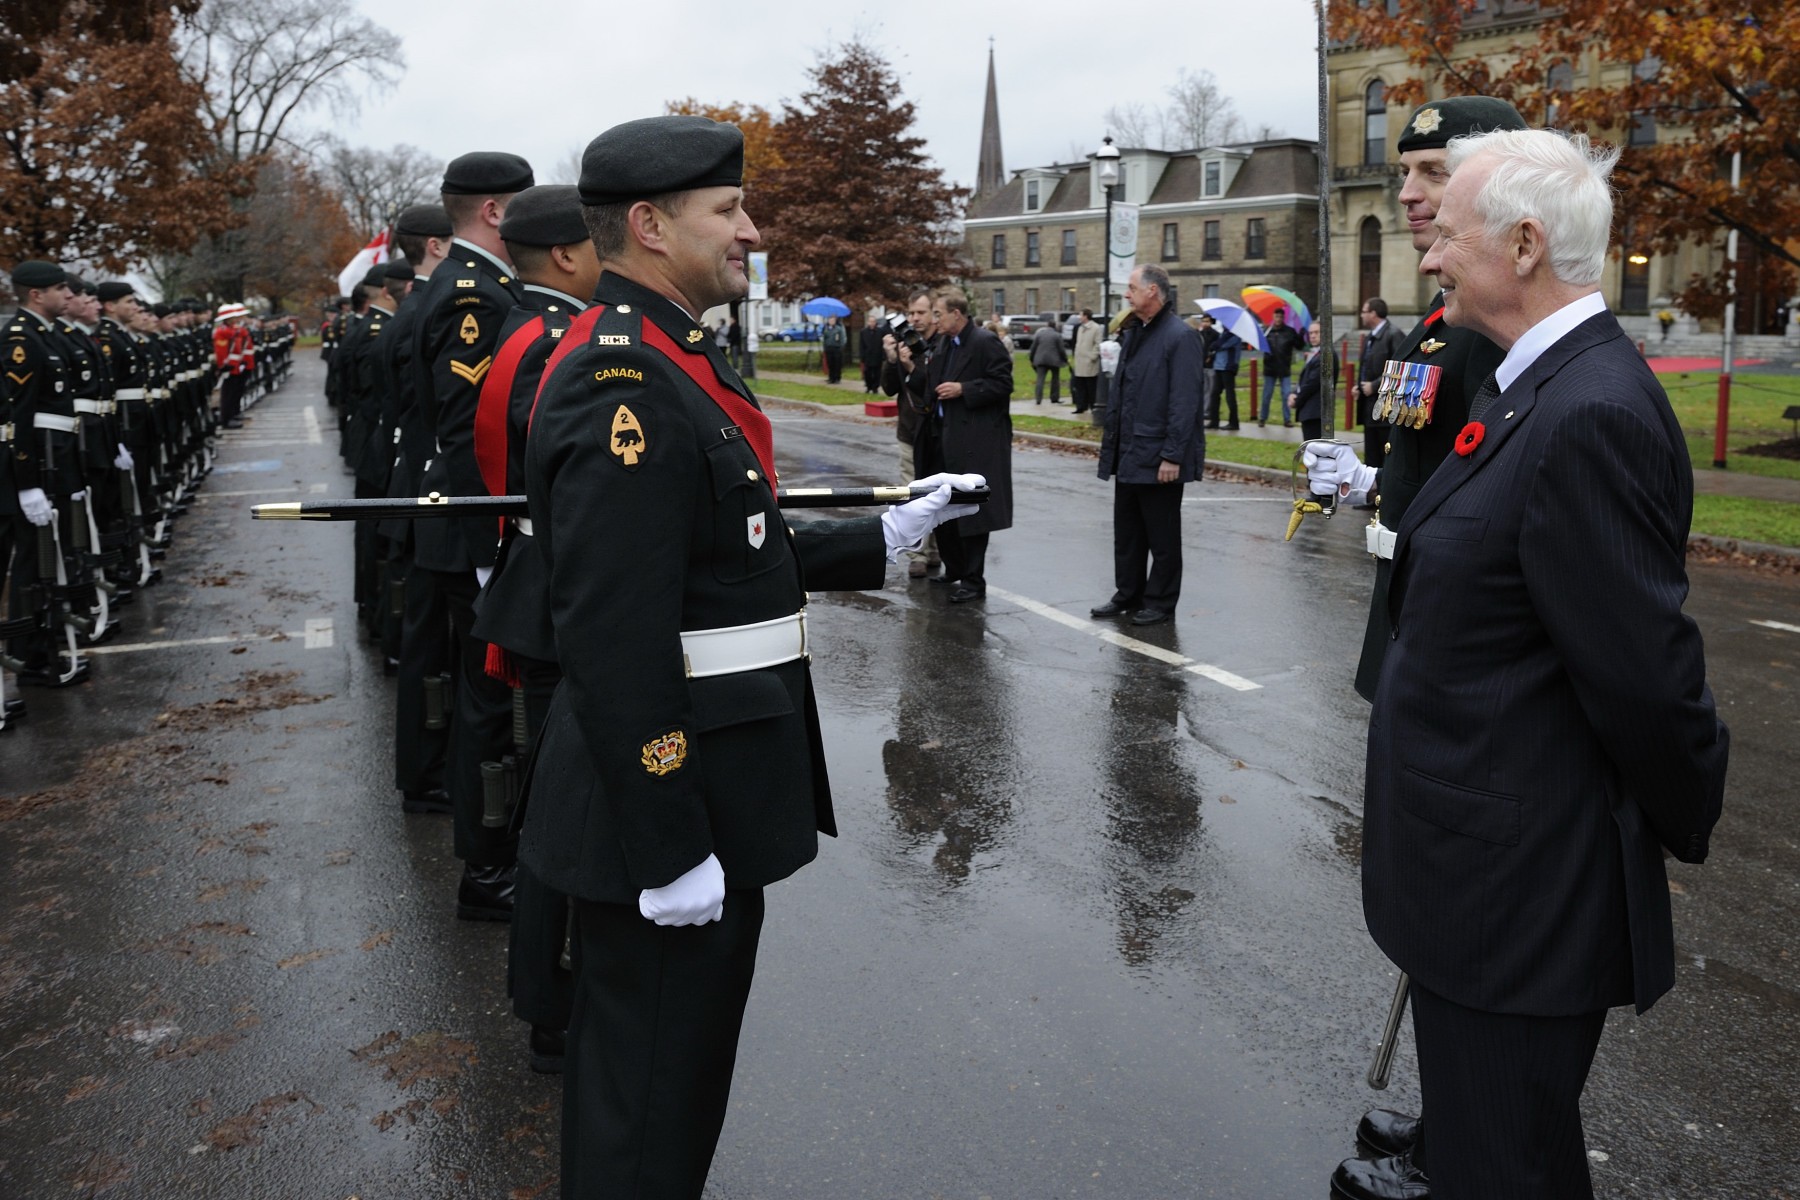 During the inspection, the Governor General stopped to speak with Canadian Forces members.